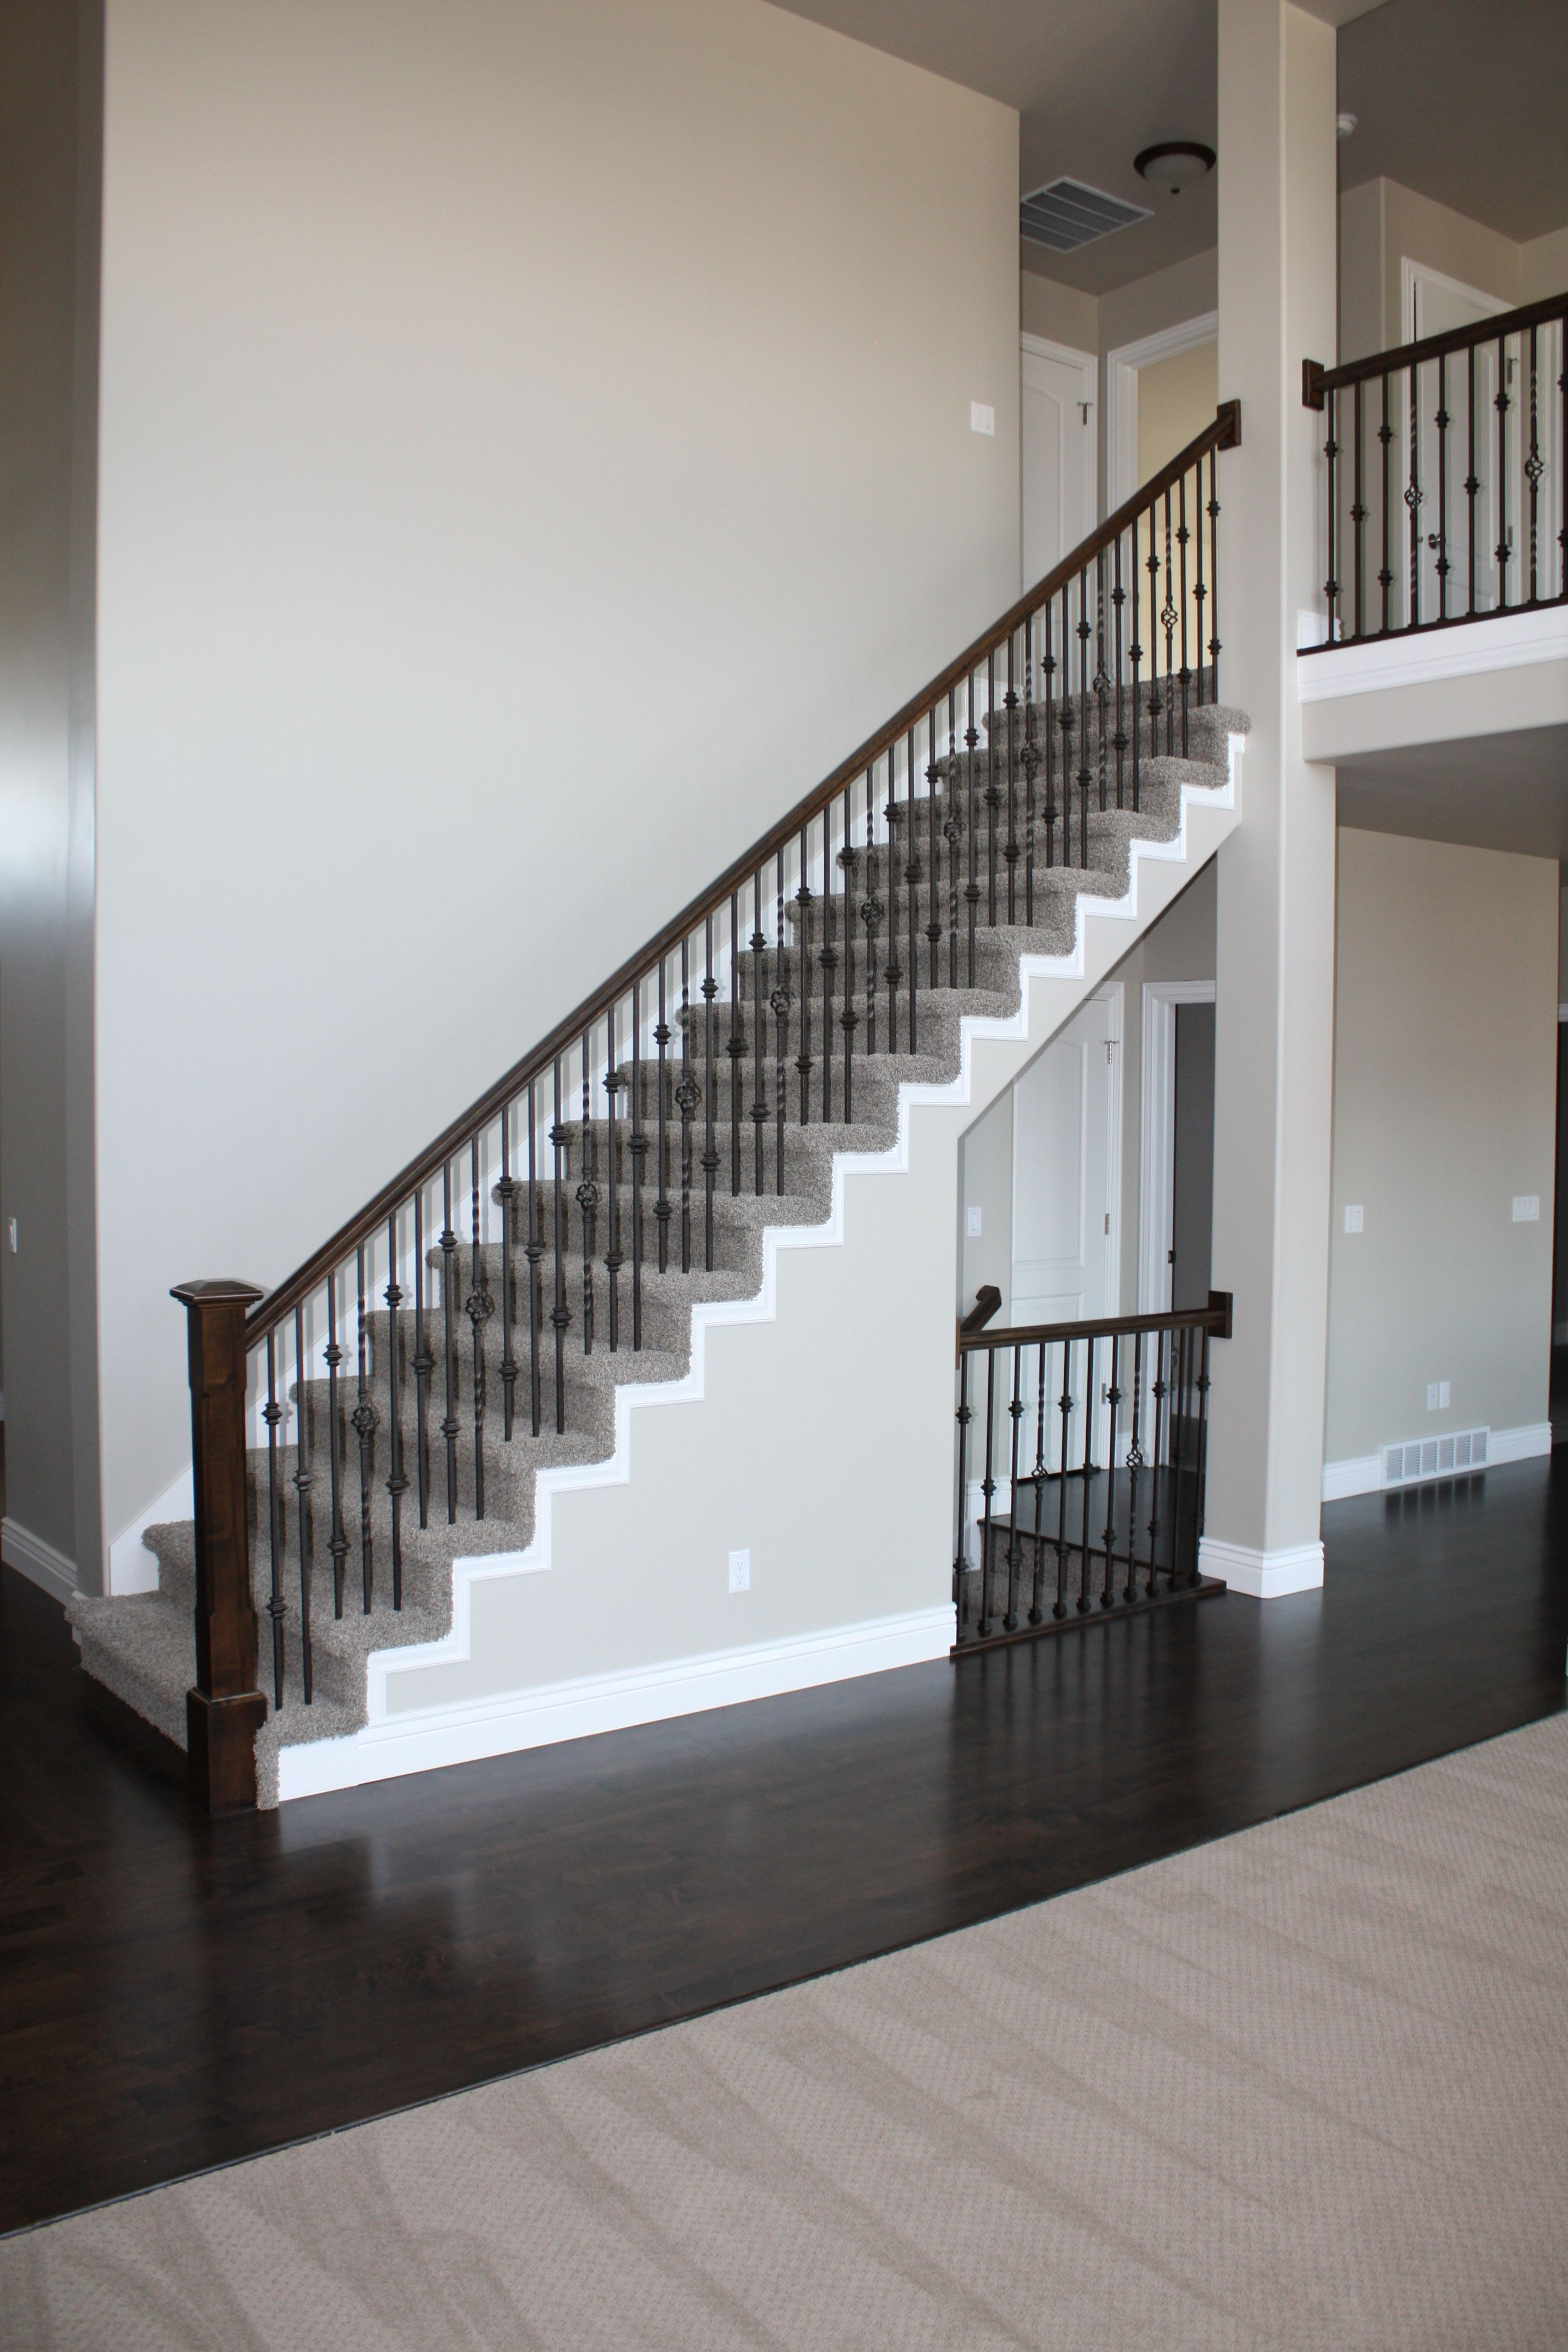 Neues haus front design beautiful open staircase design  staircases  pinterest